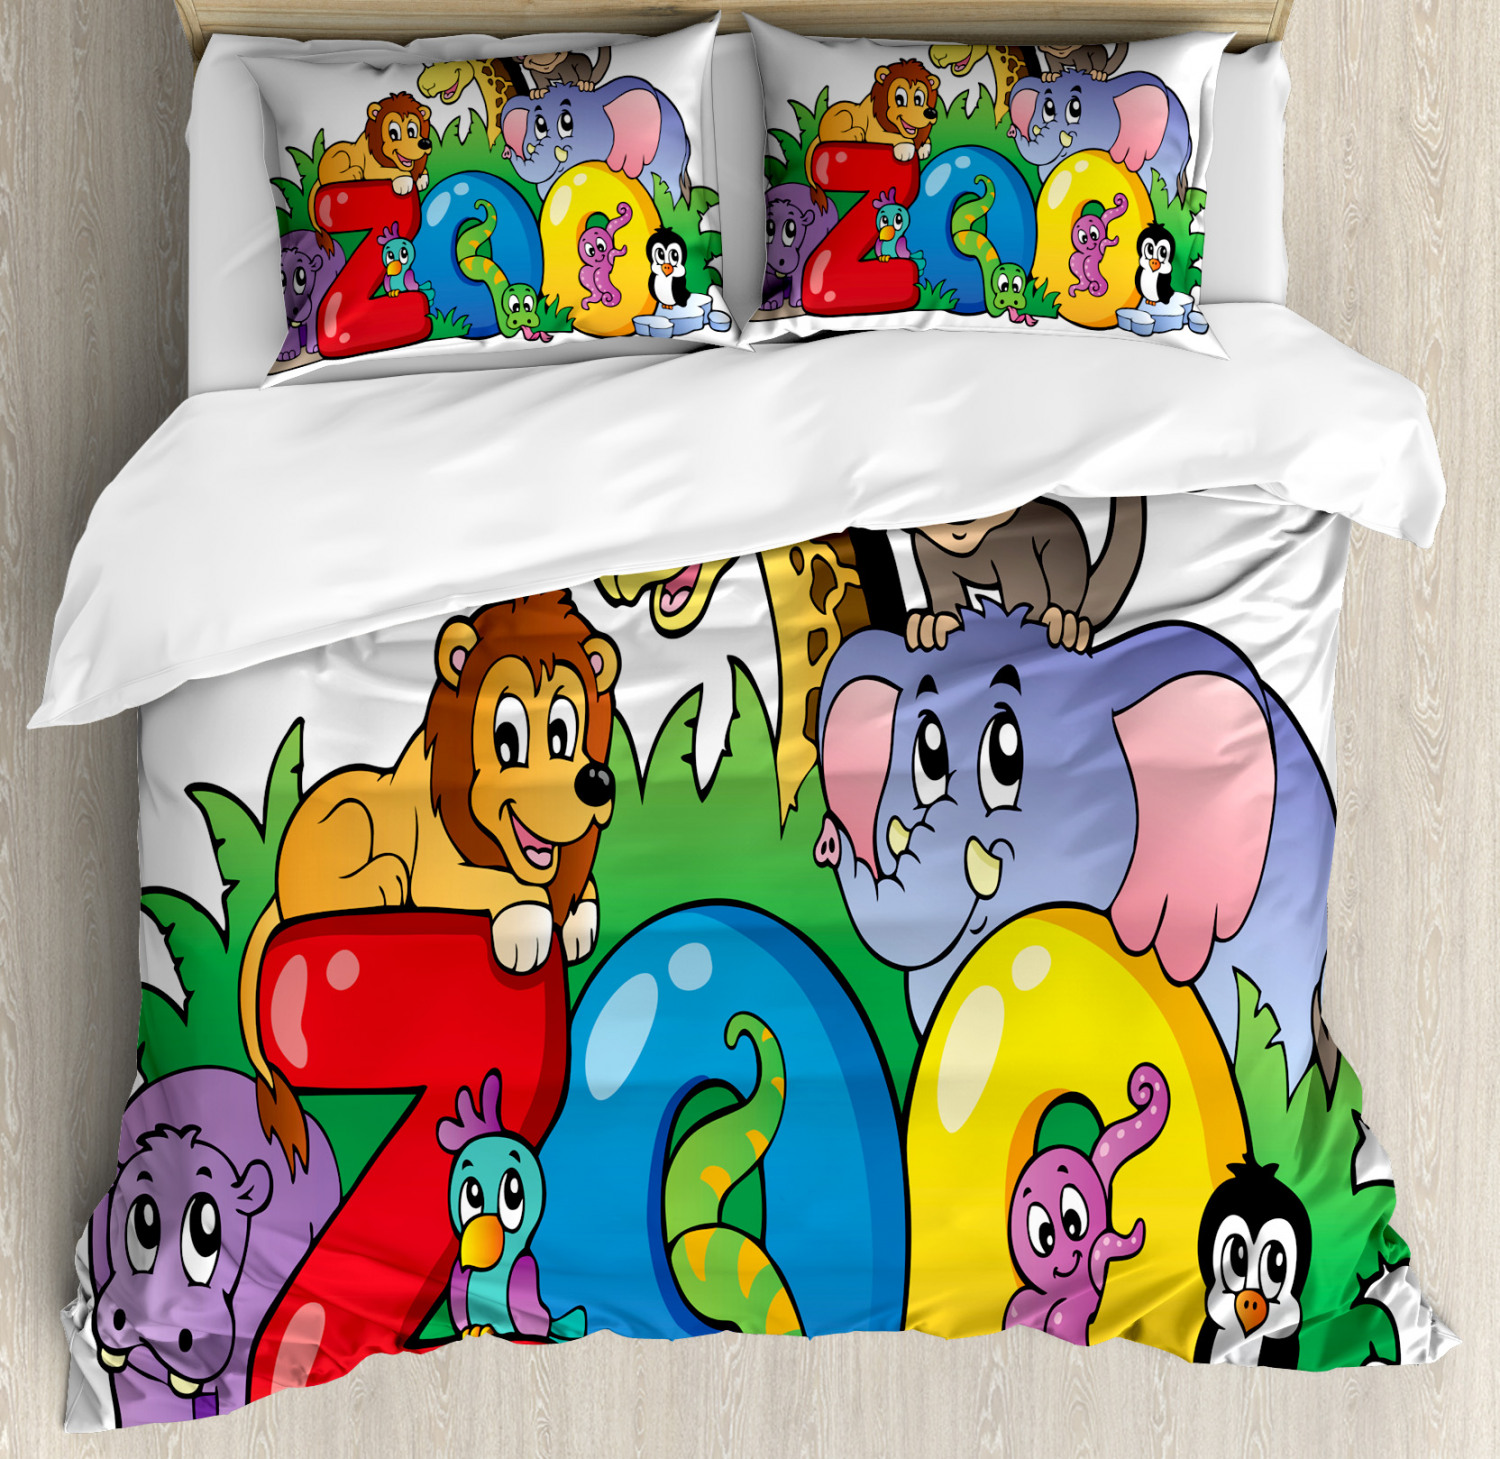 Zoo Duvet Cover Set with Pillow Shams Zoo Sign Various Mascots Print